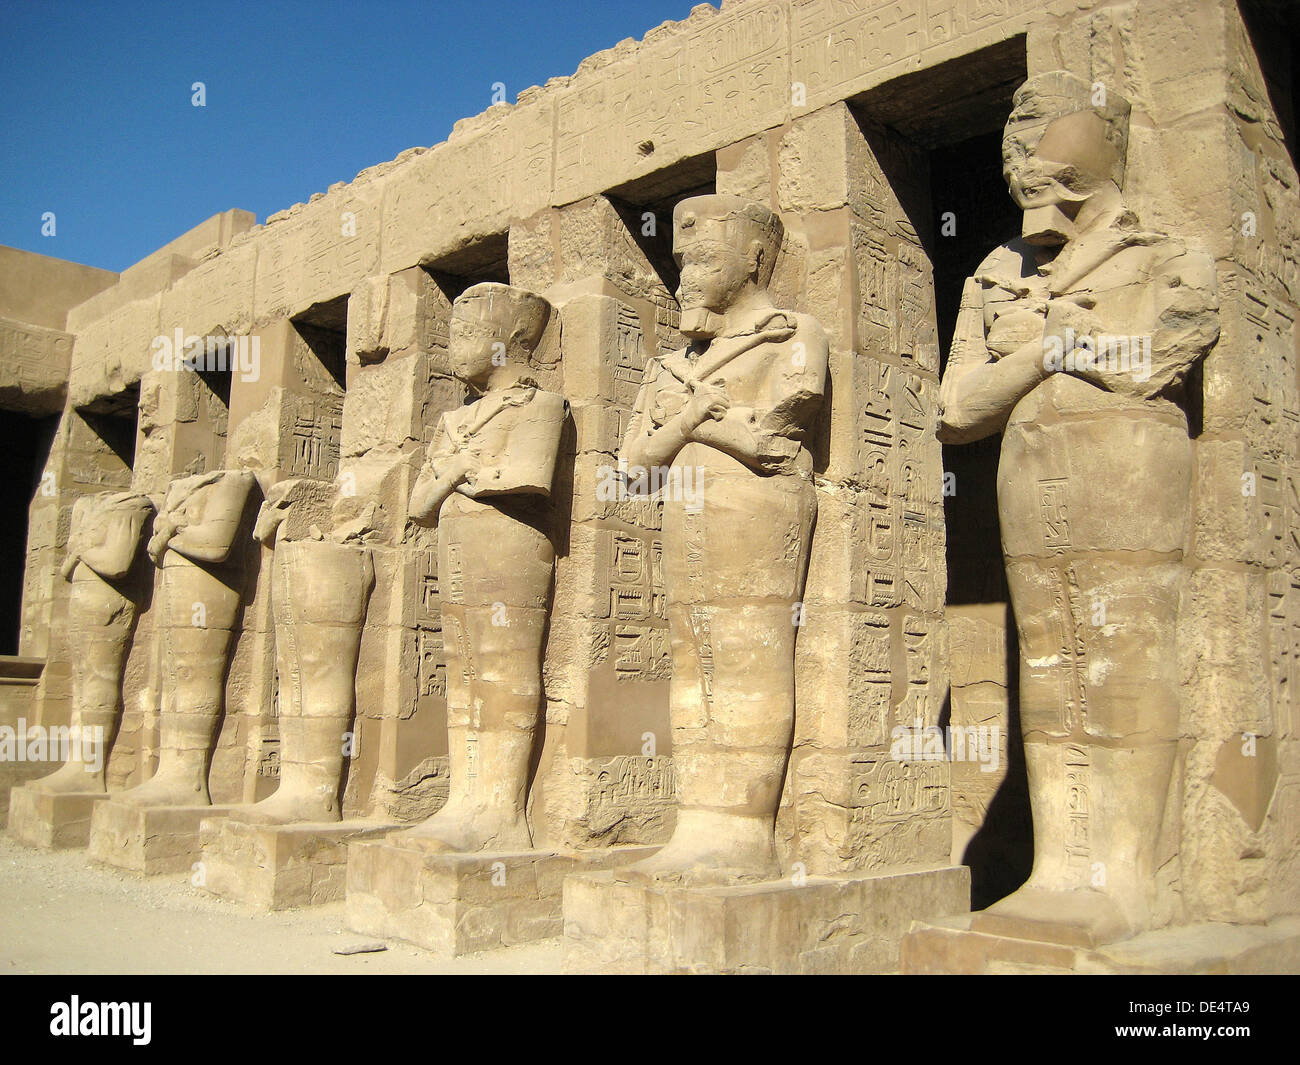 Temple of Ramses III, showing the mummy-shaped sculptures of the pharaoh. - Stock Image